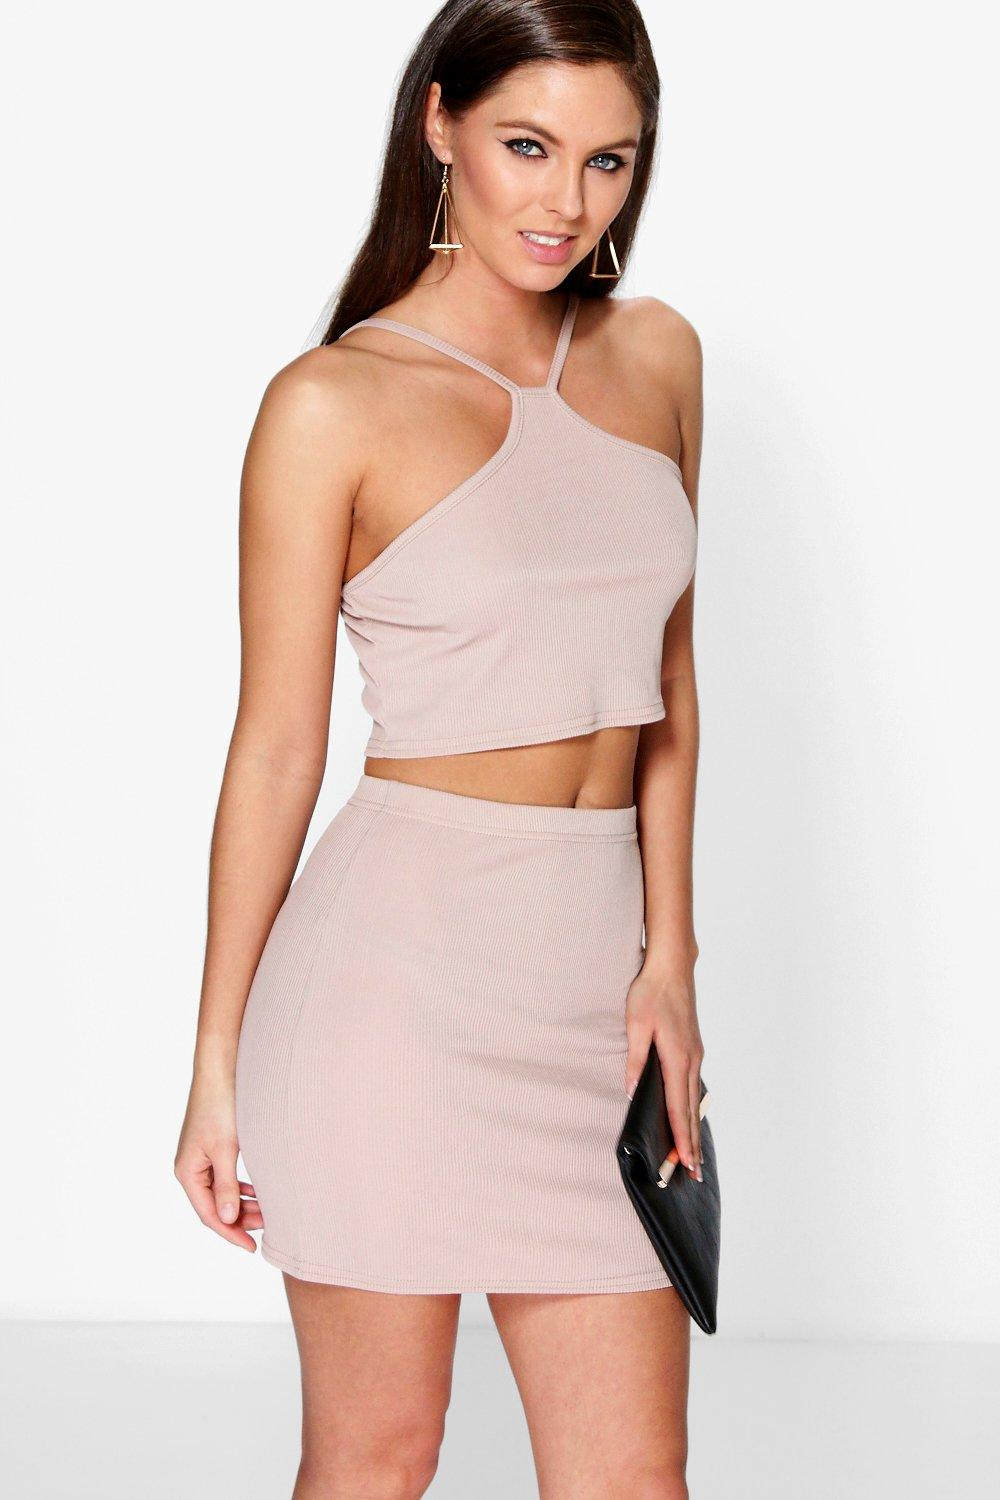 Roxy Ribbed Cut Away Top & Mini Skirt Co-Ord Set